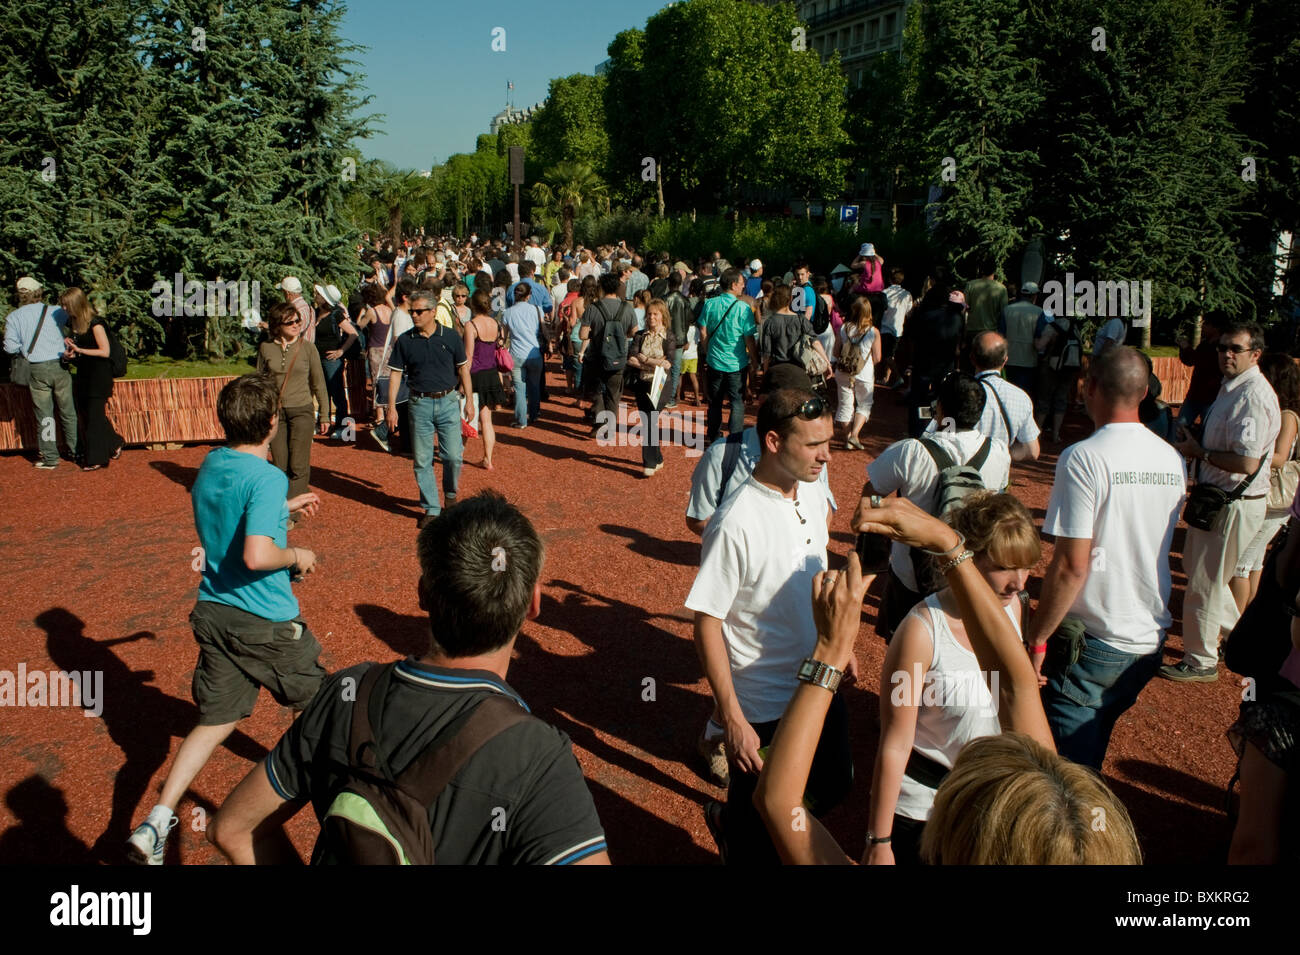 Crowd of Adults Visiting Paris, France, Garden Festival, Champs-Ely-sees Farmer's Event - Stock Image